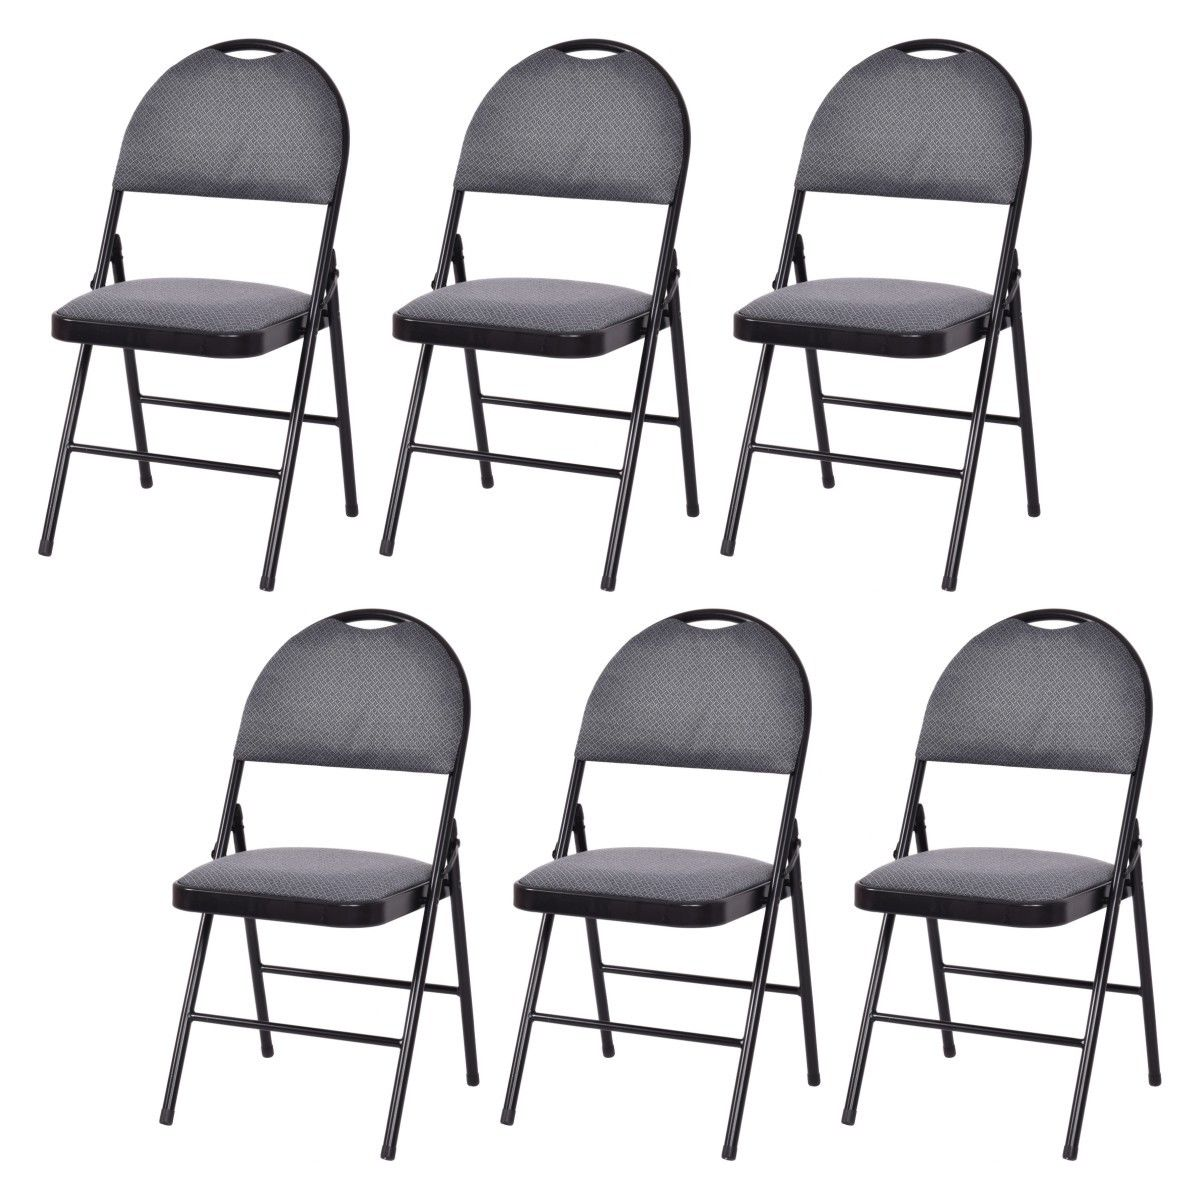 Costway Set of 6 Folding Chairs Fabric Upholstered Padded Seat Metal Frame Home Office by Costway